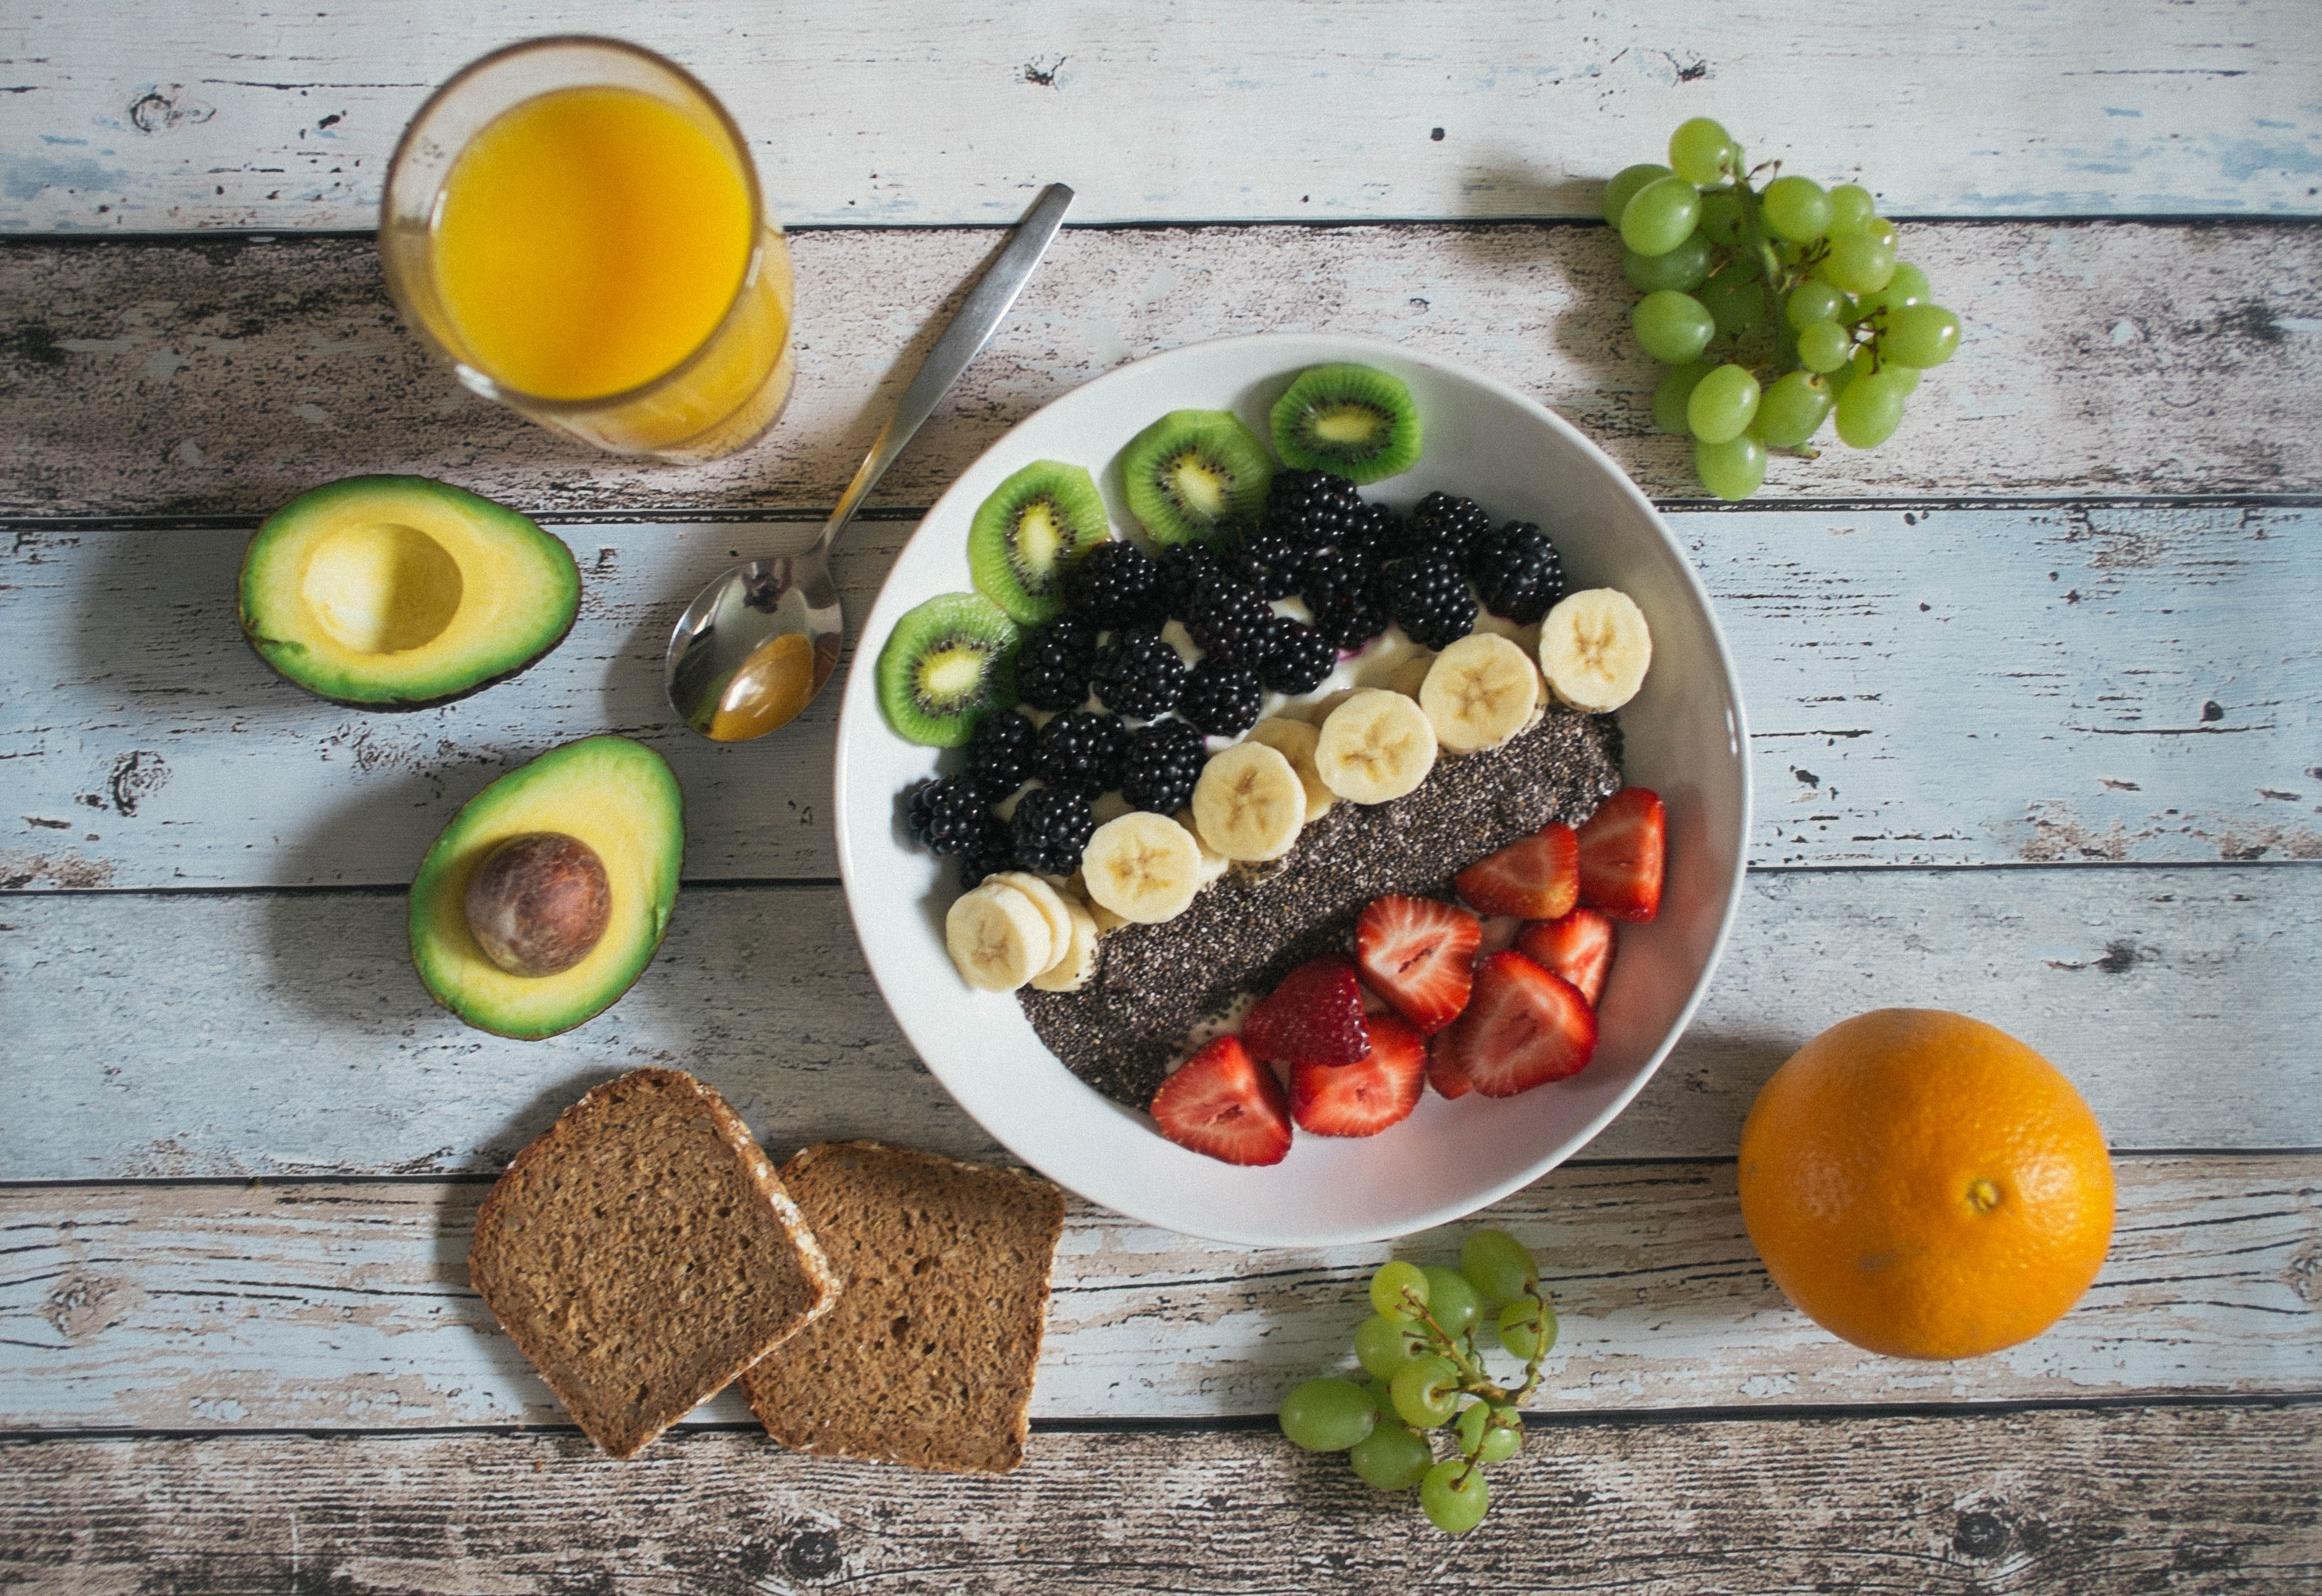 Trendy smoothie bowl with fresh fruit, avocado, chia seeds, and berries